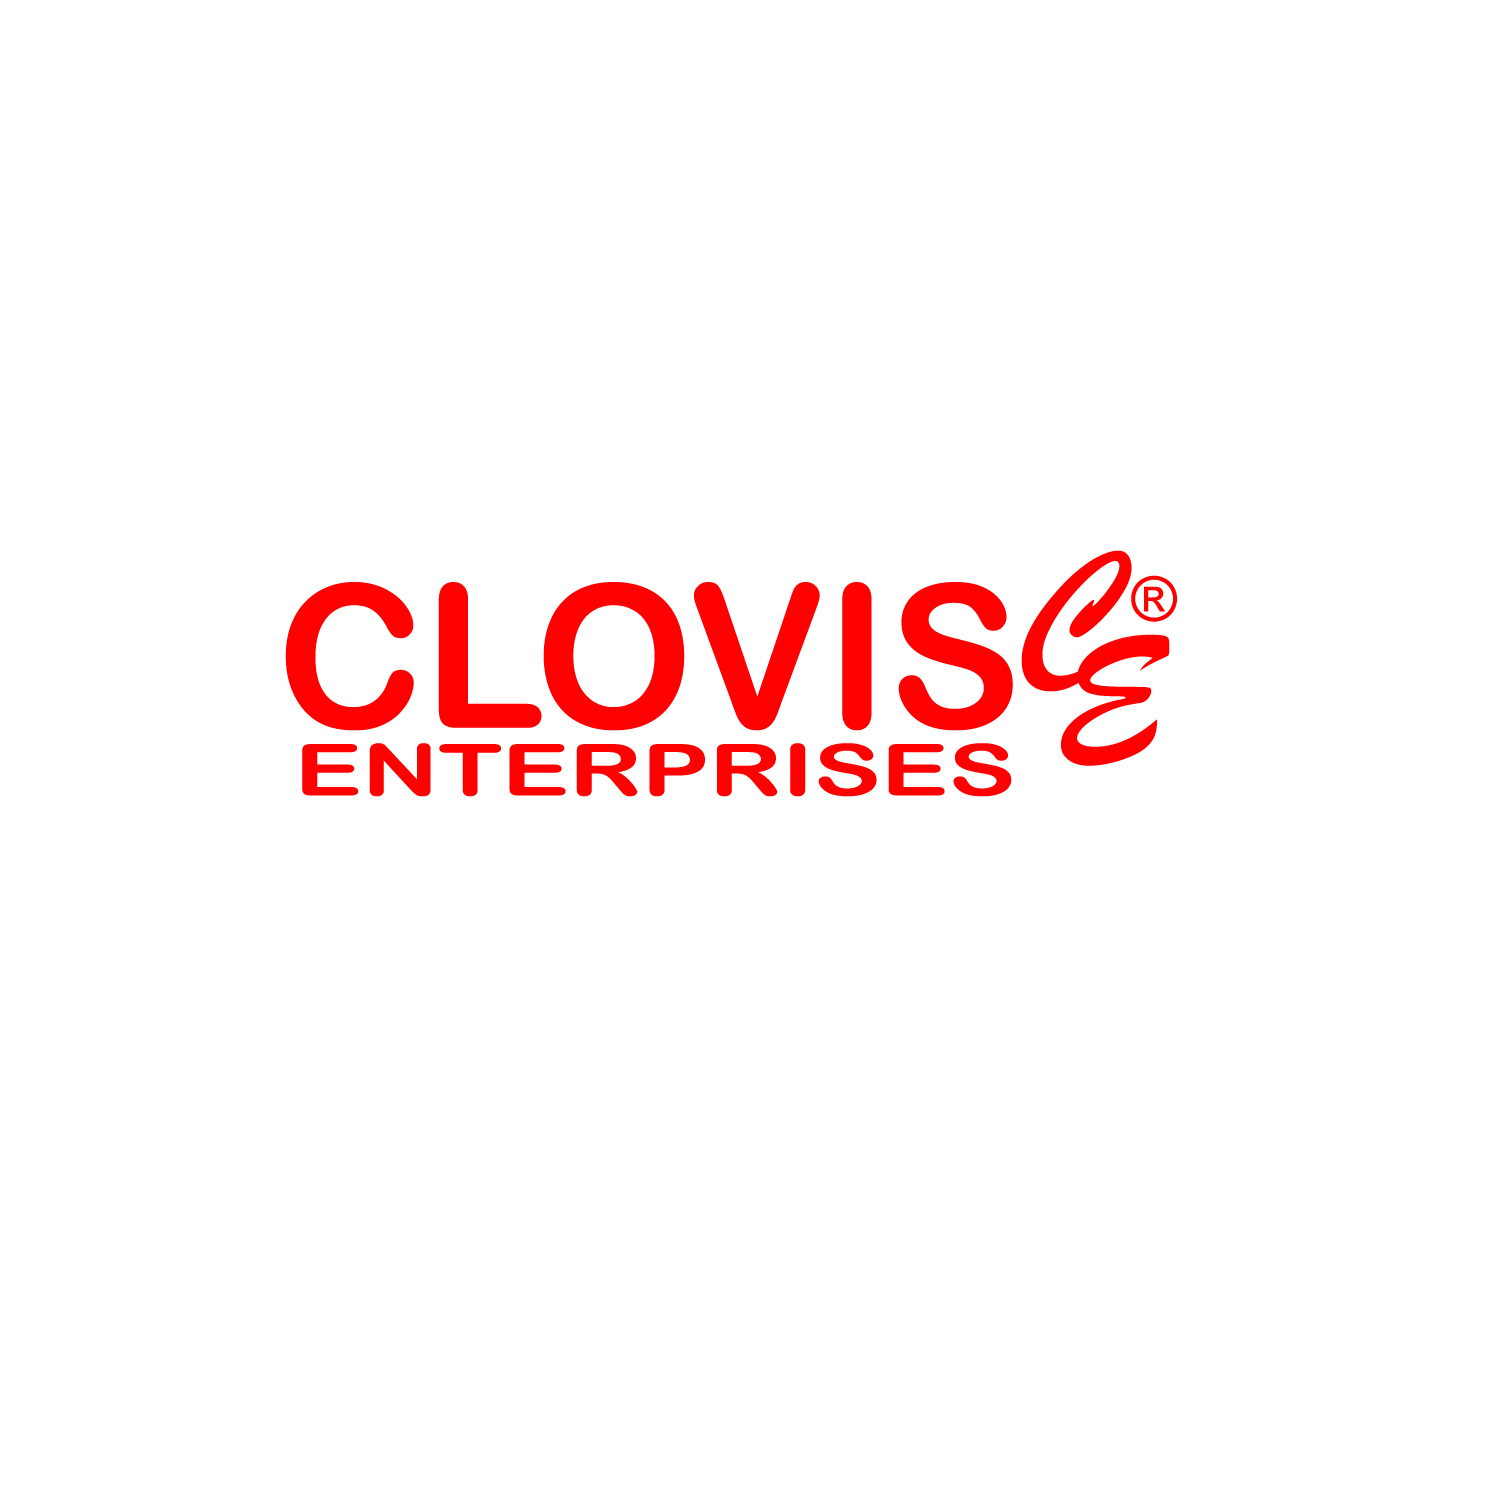 Clovis Enterprises logo